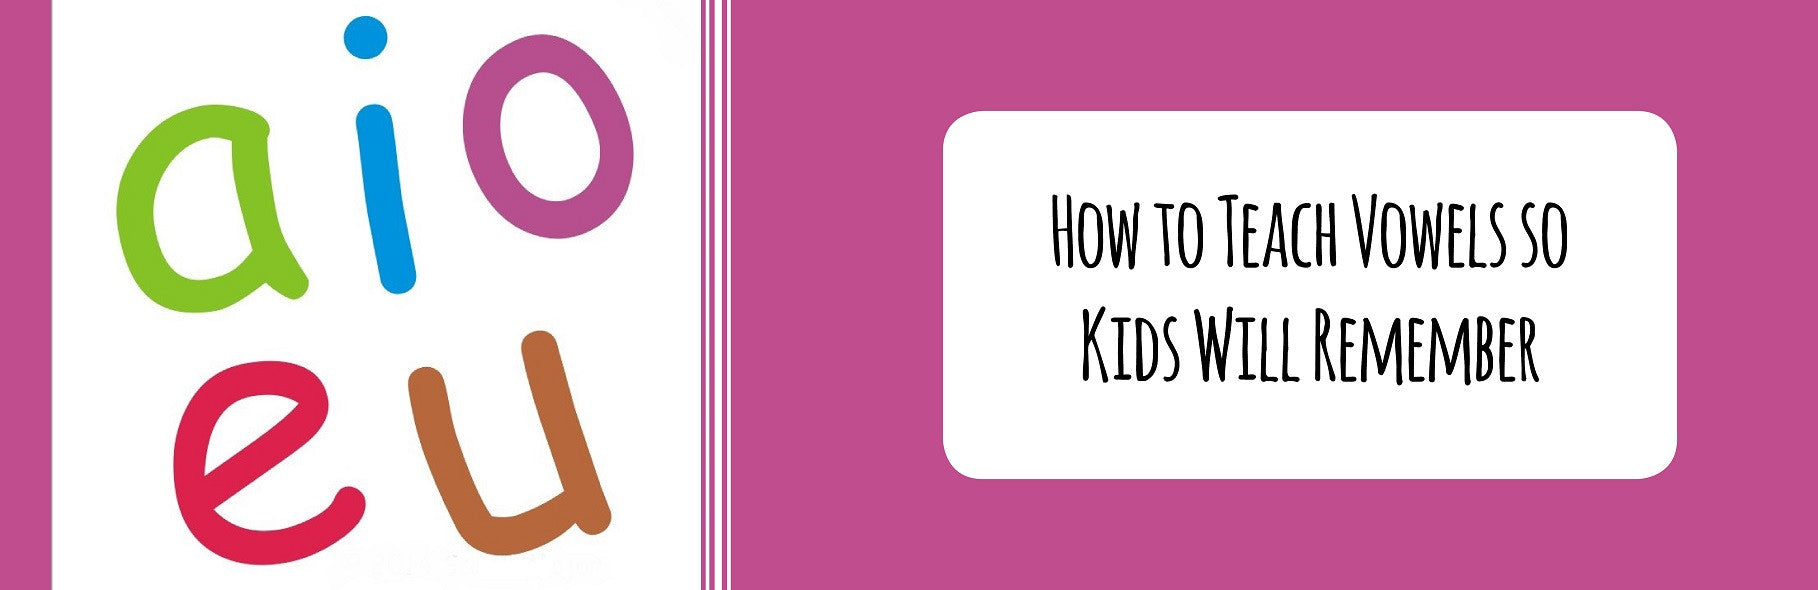 How to Teach Vowel Sounds so Kids Will Remember - Child1st ...